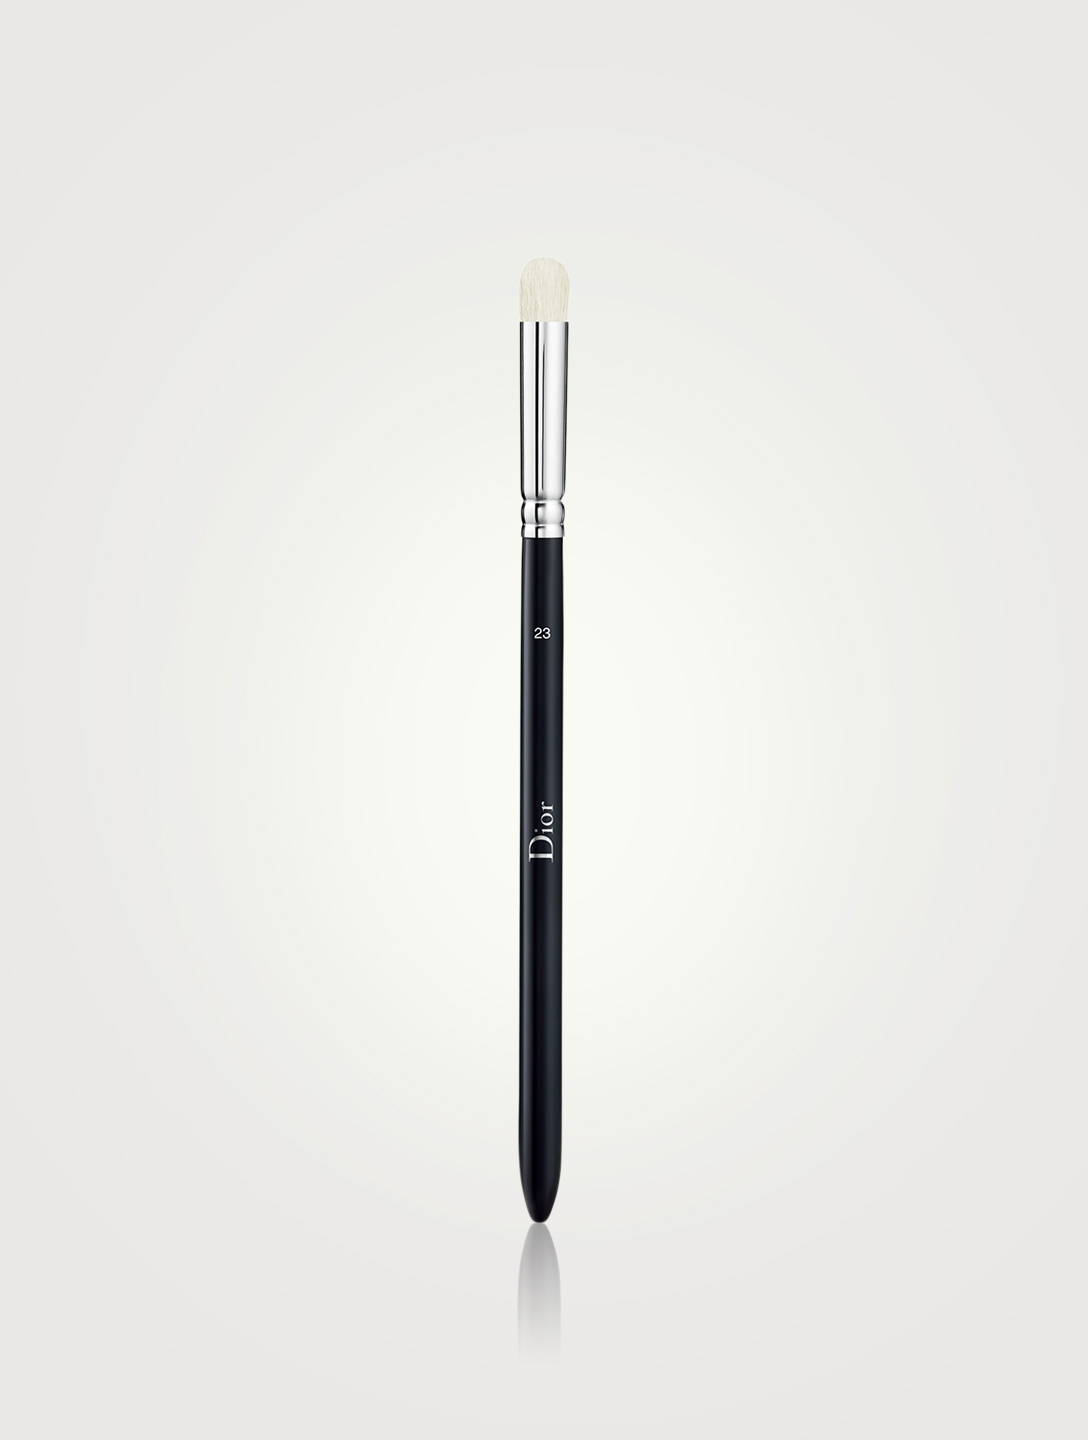 DIOR Dior Backstage Large Eyeshadow Blending Brush N° 23 Designers